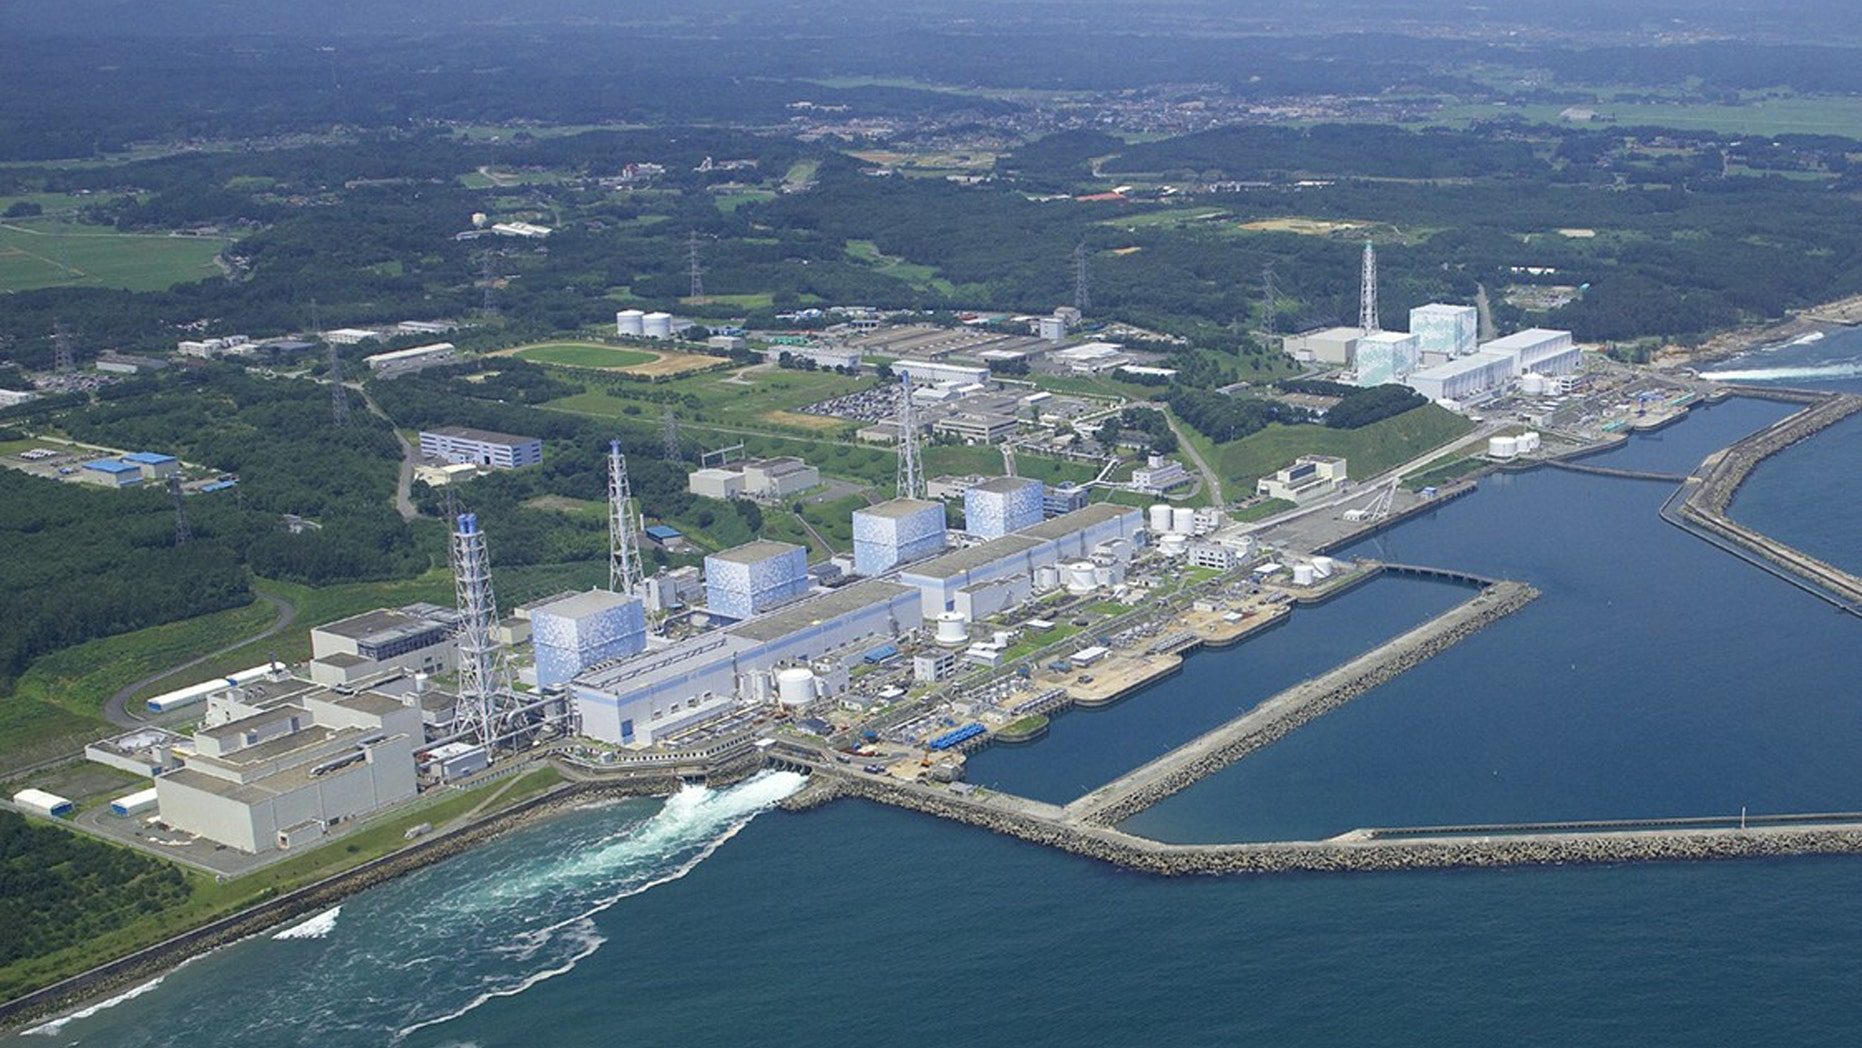 """The Fukushima Daiichi Nuclear Power Plant reactors stand in line intact in Okuma town in Fukushima Prefecture, northeastern Japan. Radiation has covered the area around the Fukushima Dai-ichi plant and blanketed parts of the complex, making the job of rendering the plant safe so that it doesn't threaten public health and the environment, or """"decommissioning"""", a bigger task than usual."""